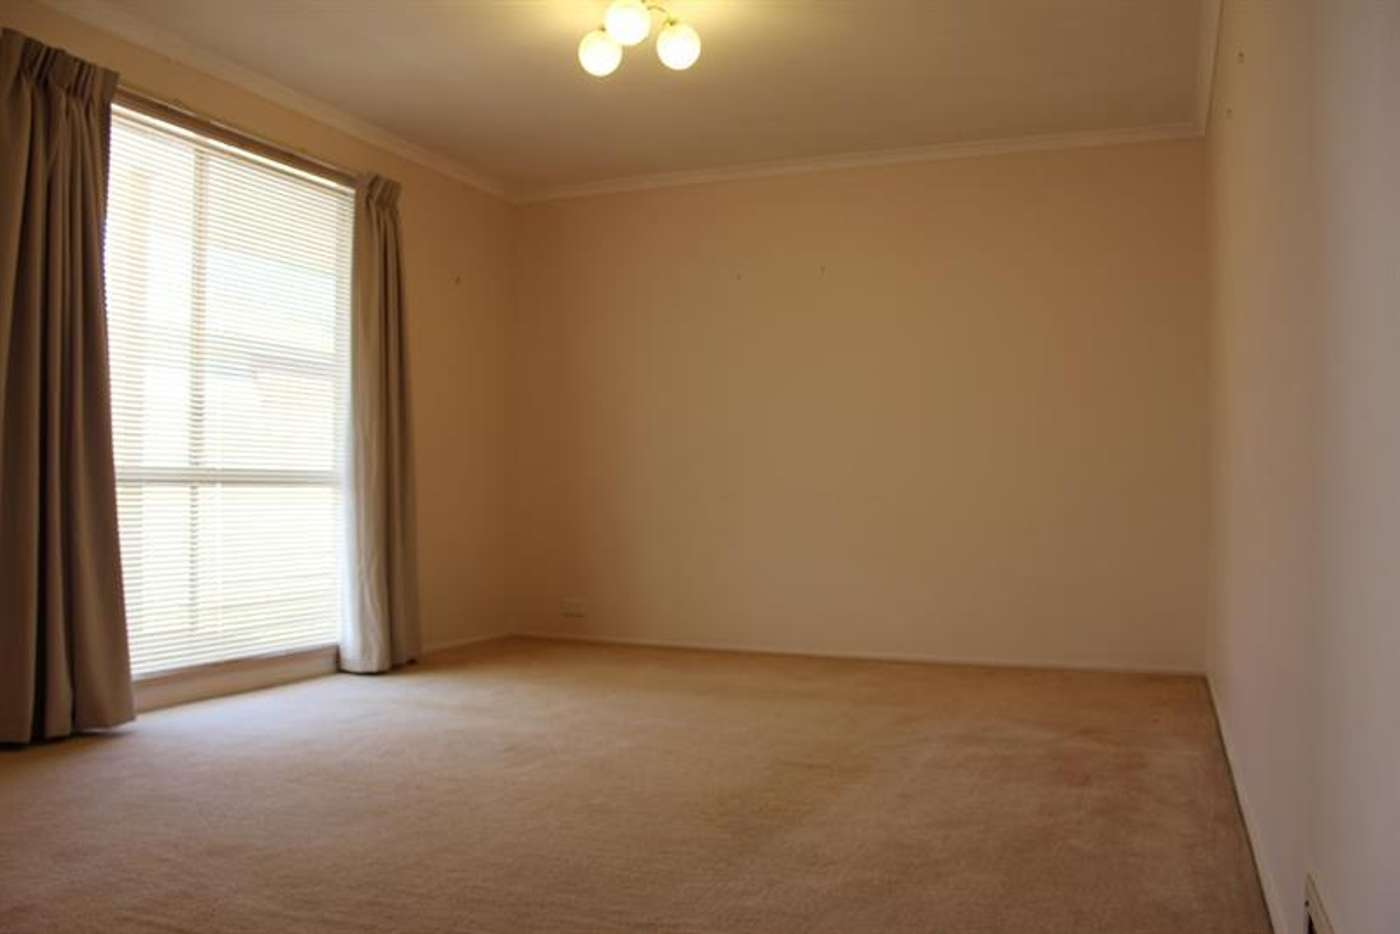 Sixth view of Homely house listing, 4 Sturtvale Ct, West Albury NSW 2640